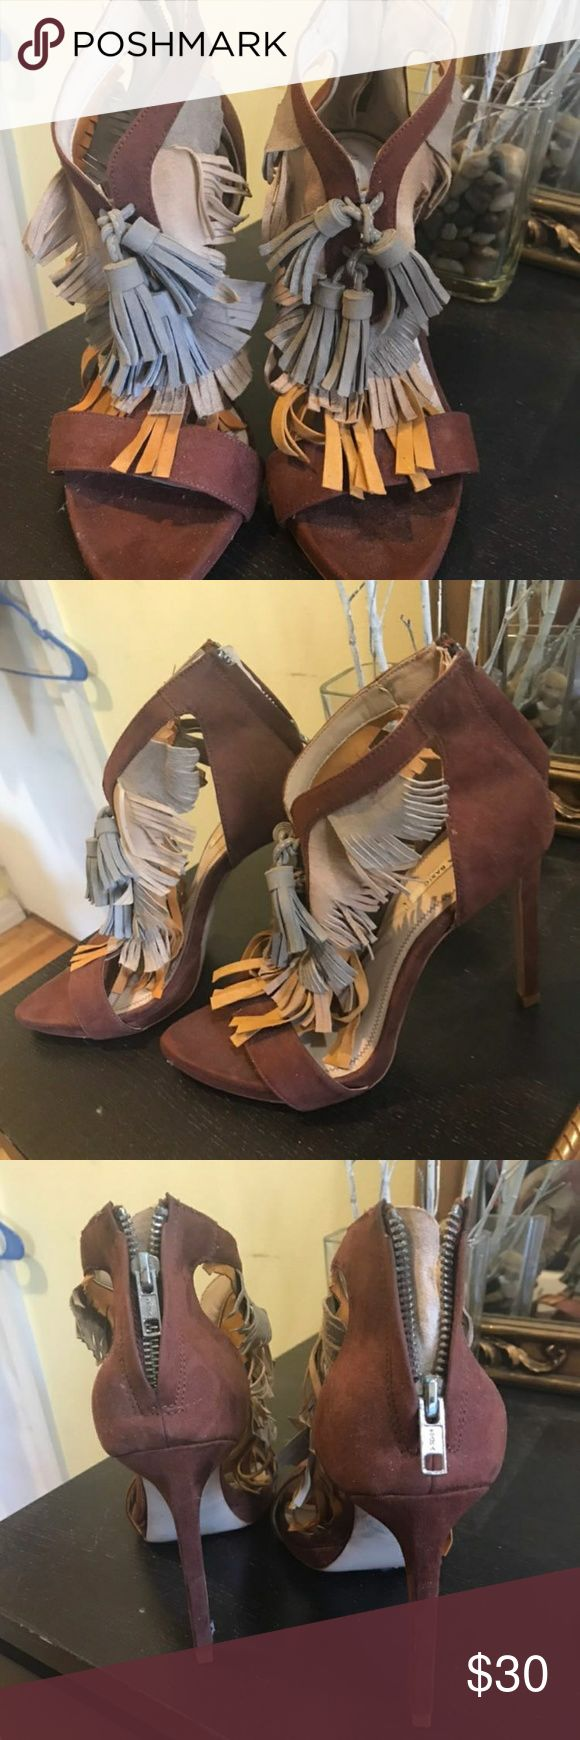 Marroon tassel heels zara These funky stunners will kill any outift! Pictured show condition Zara Shoes Heels